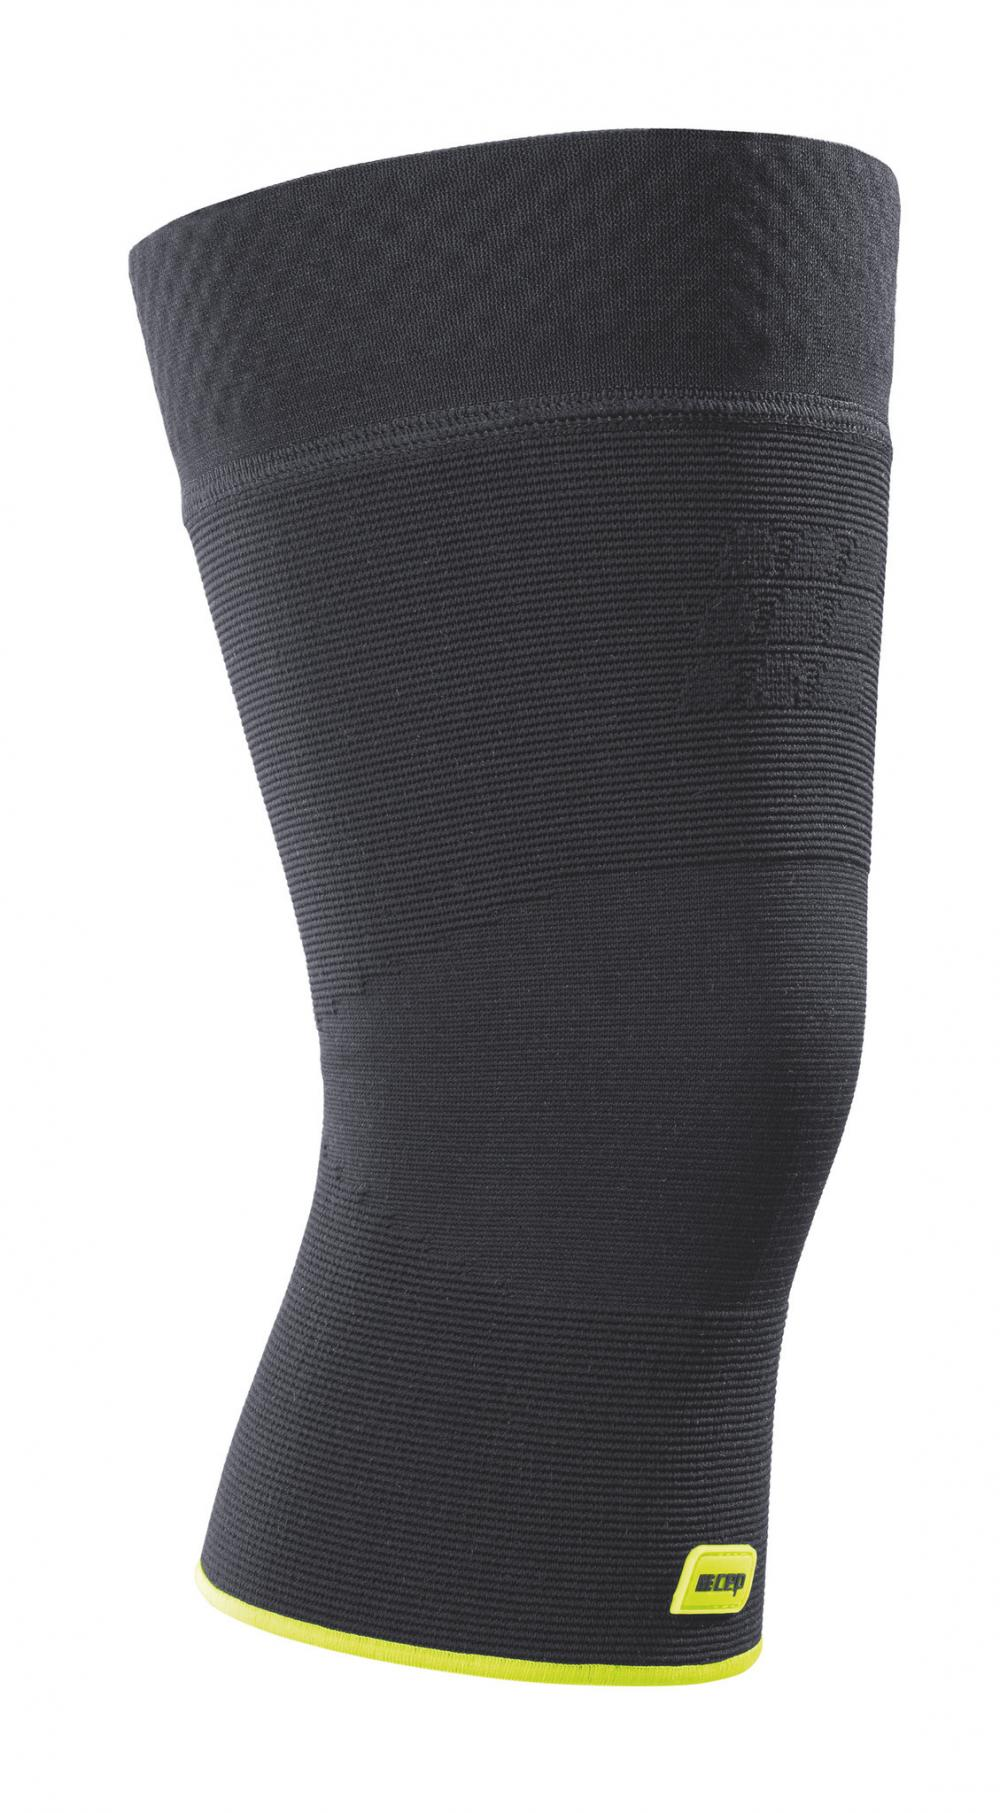 CEP Ortho + Compression Knee Sleeve, Size 5